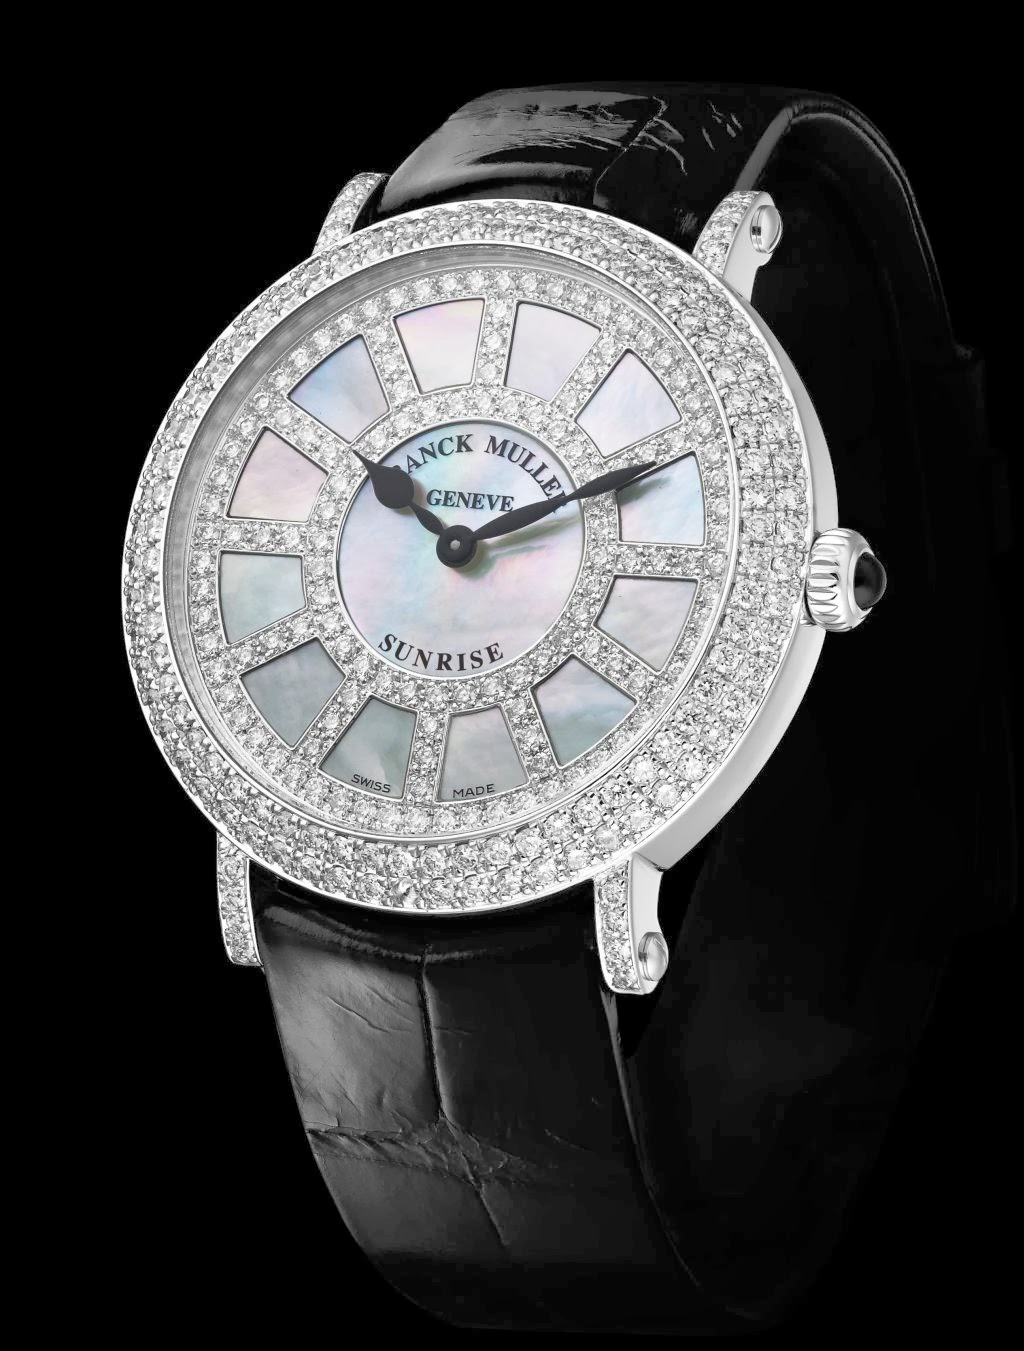 Franck Muller Sunrise Round replica watch